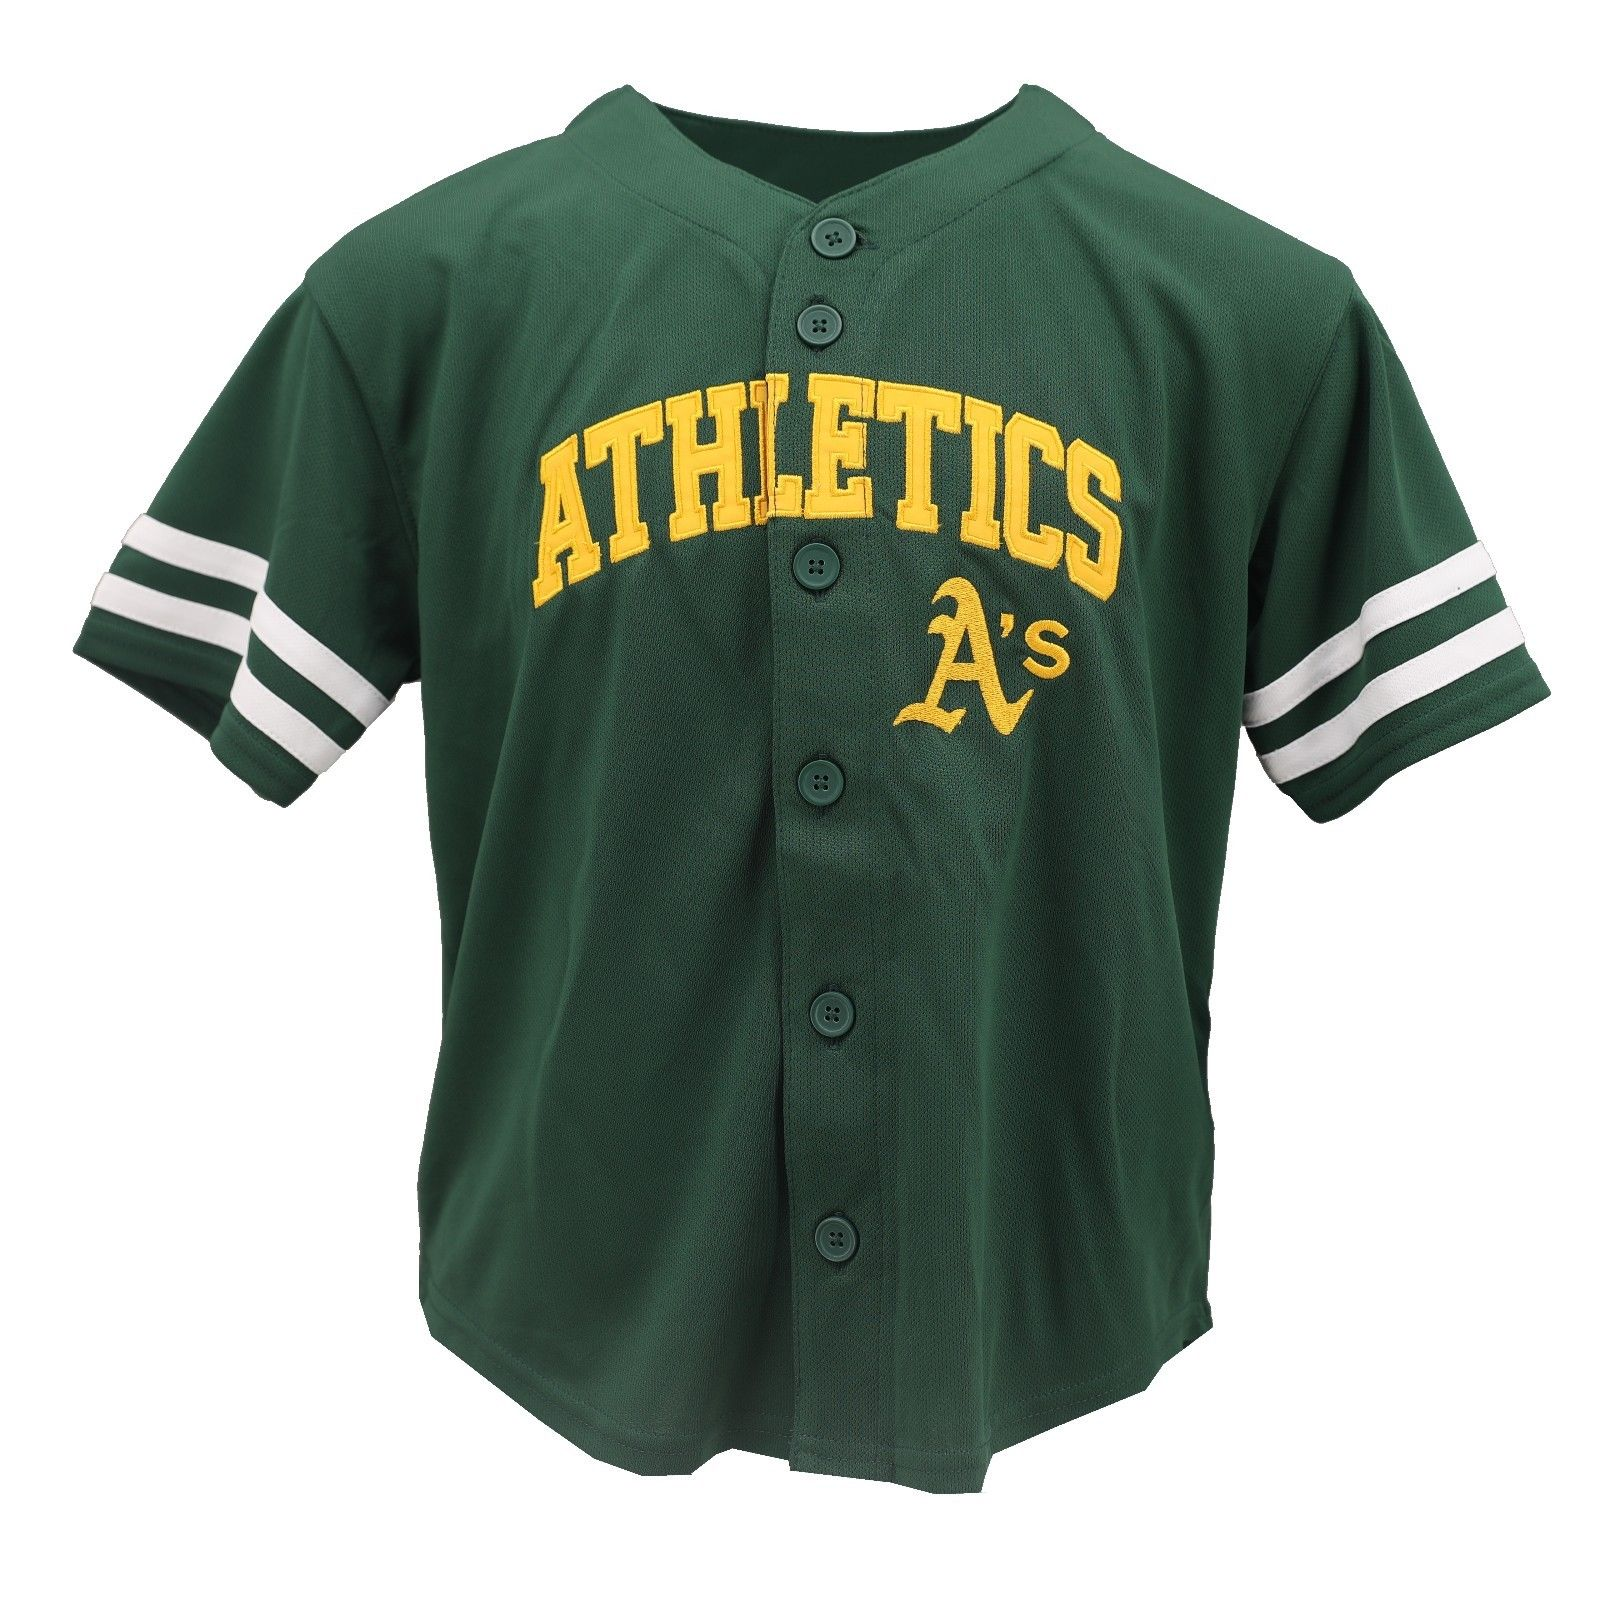 Oakland Athletics Official MLB Genuine Kids Youth Size Jersey New with Tags